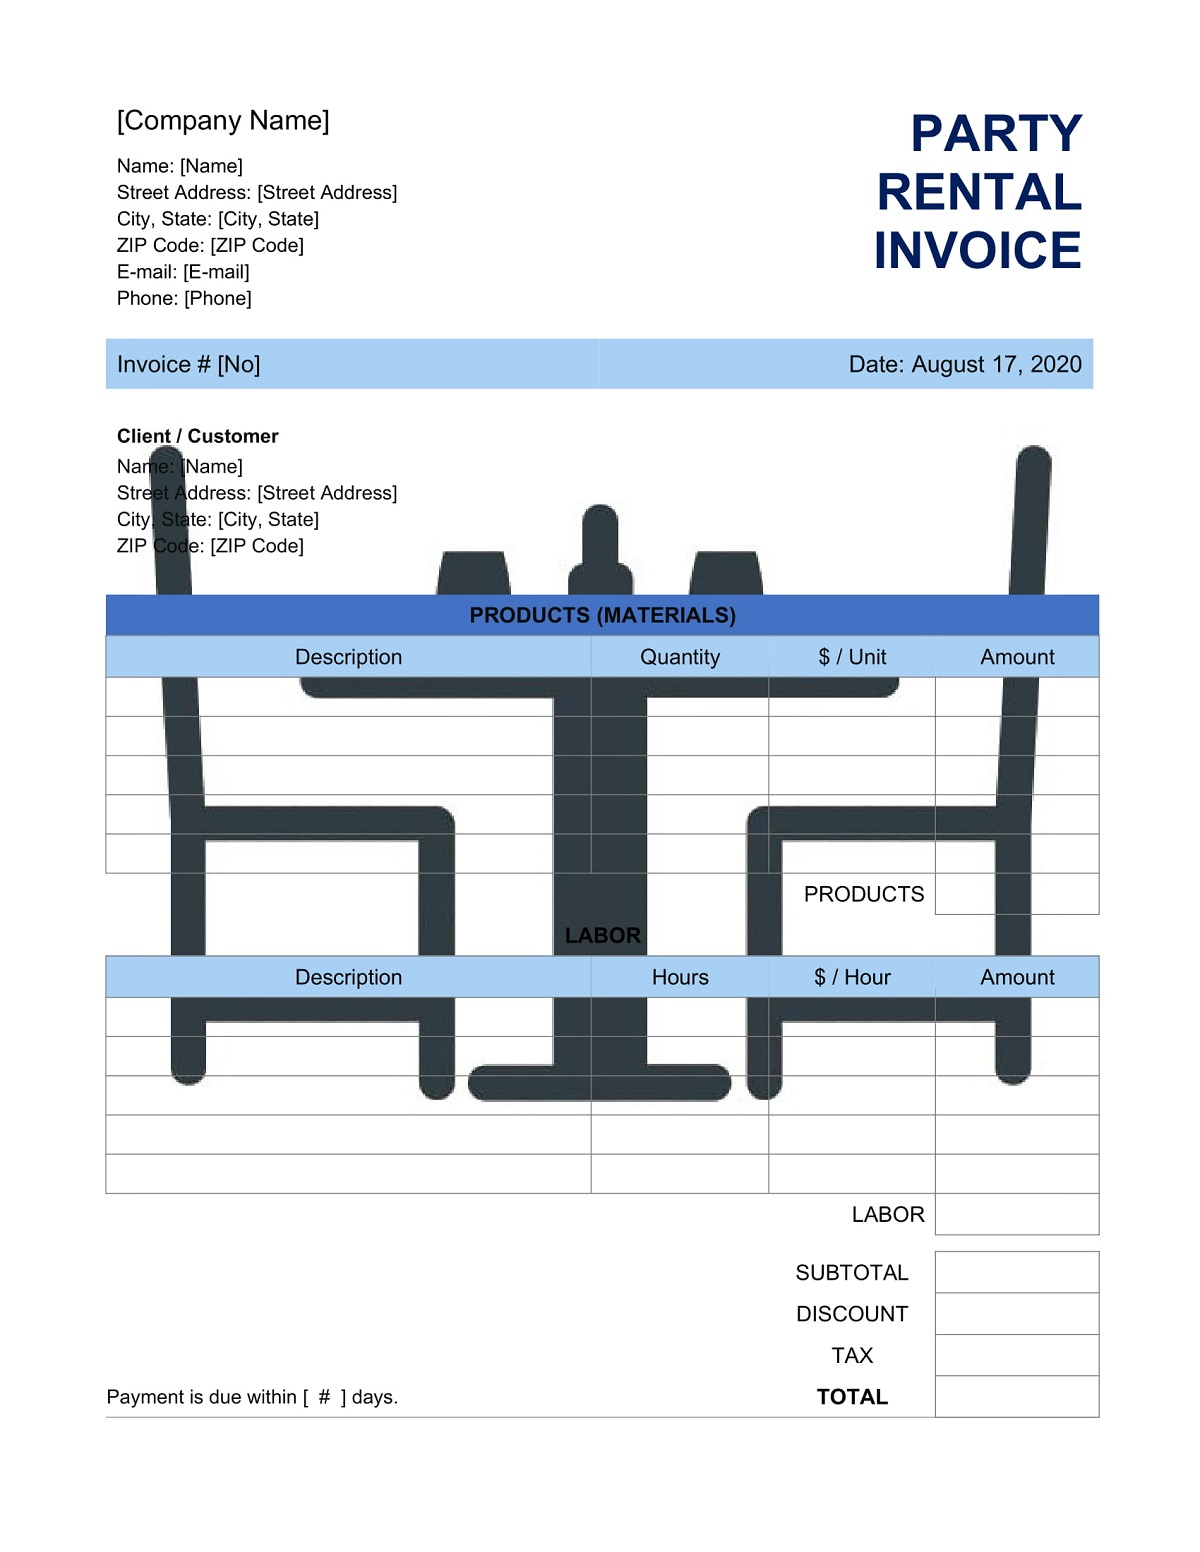 Party Rental Invoice Template